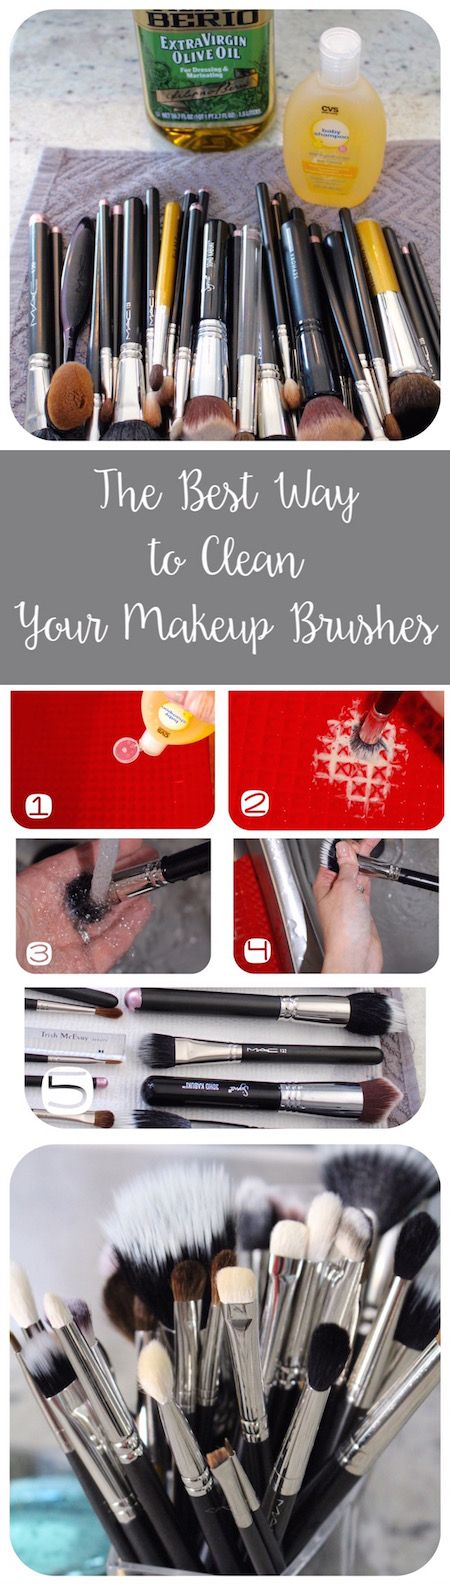 The best brush cleaning tutorial! So easy and makes my brushes like new again!